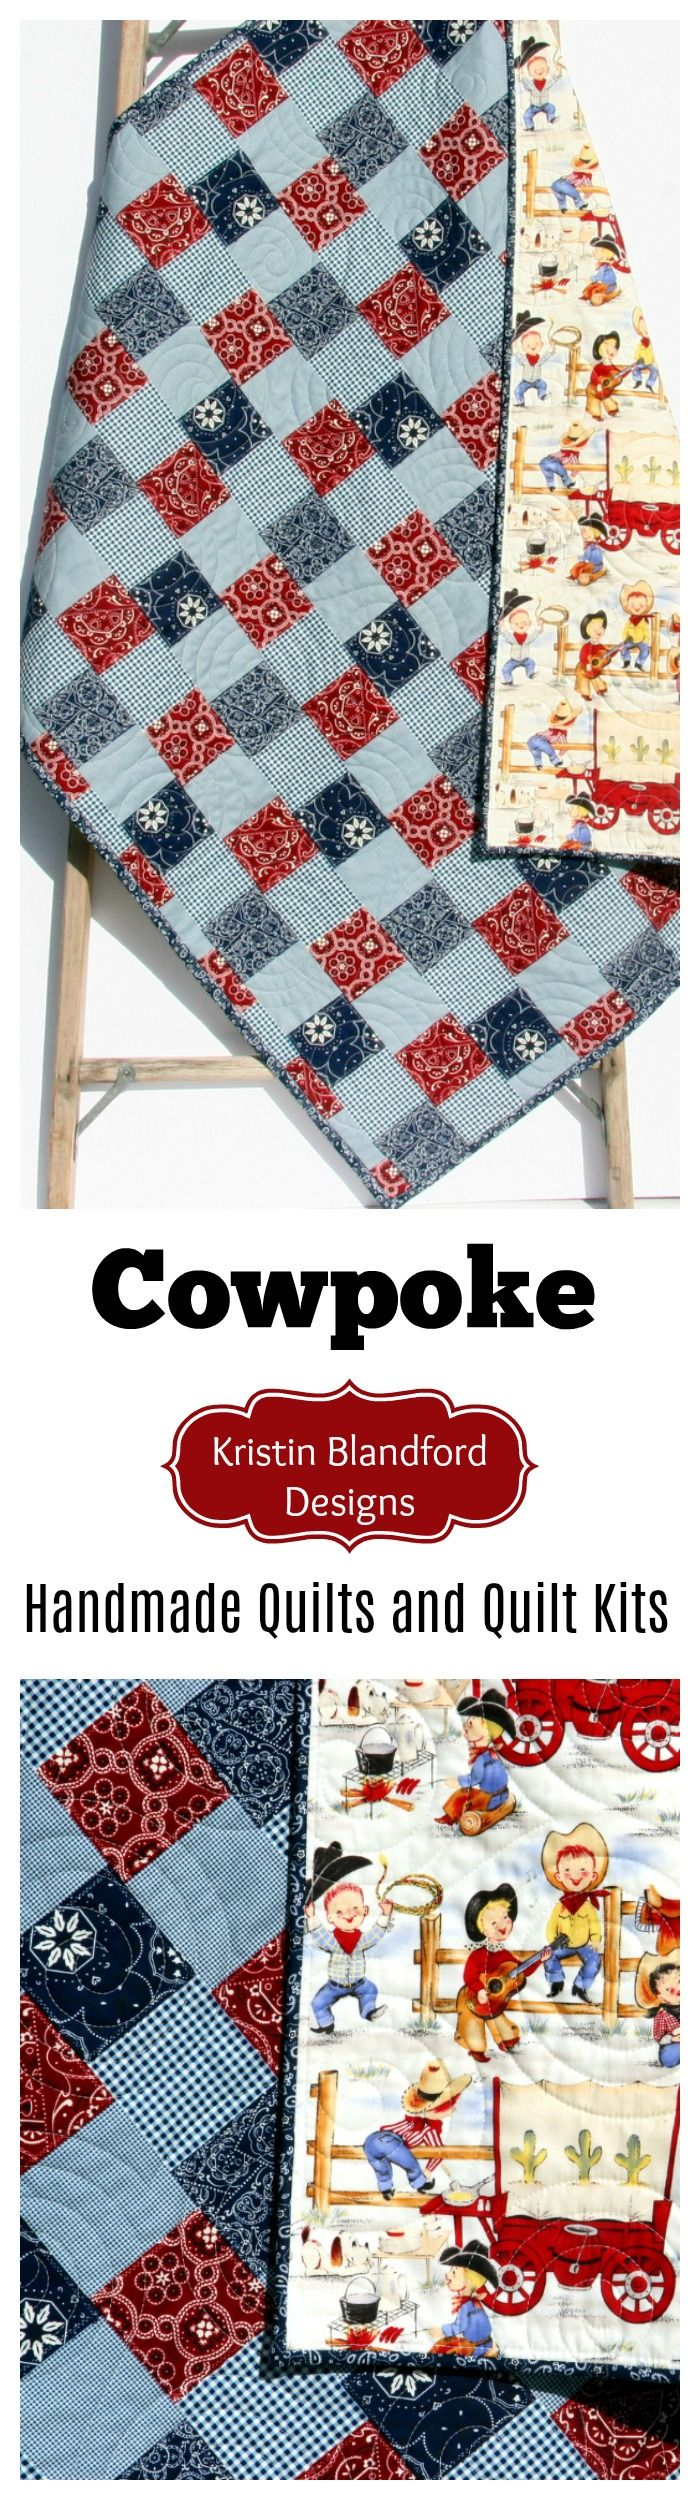 Handmade Western Baby Quilt, Toddler Quilt, Faux Patchwork Cheater Panel Quilt Kit, Baby Quilt Kit, Toddler Quilt Kit, Simple Quick Easy Sewing Quilting Project Western Cowboy Baby Shower Gift Ideas Cowgirl Baby Bedding Nursery Blanket by Kristin Blandford Designs